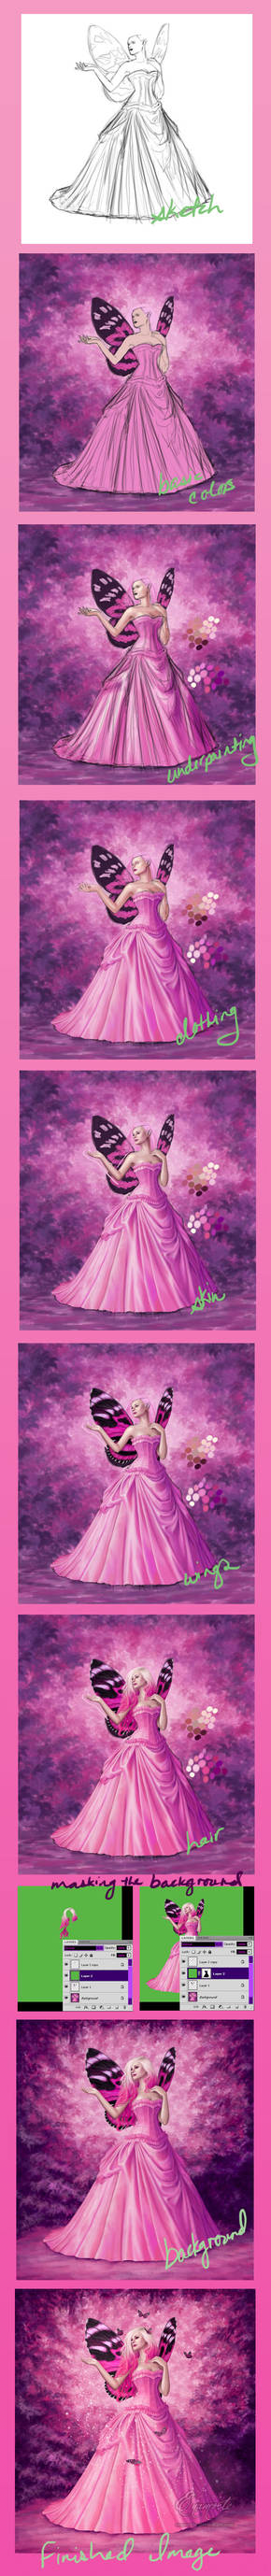 Touch of Rose : Step by step